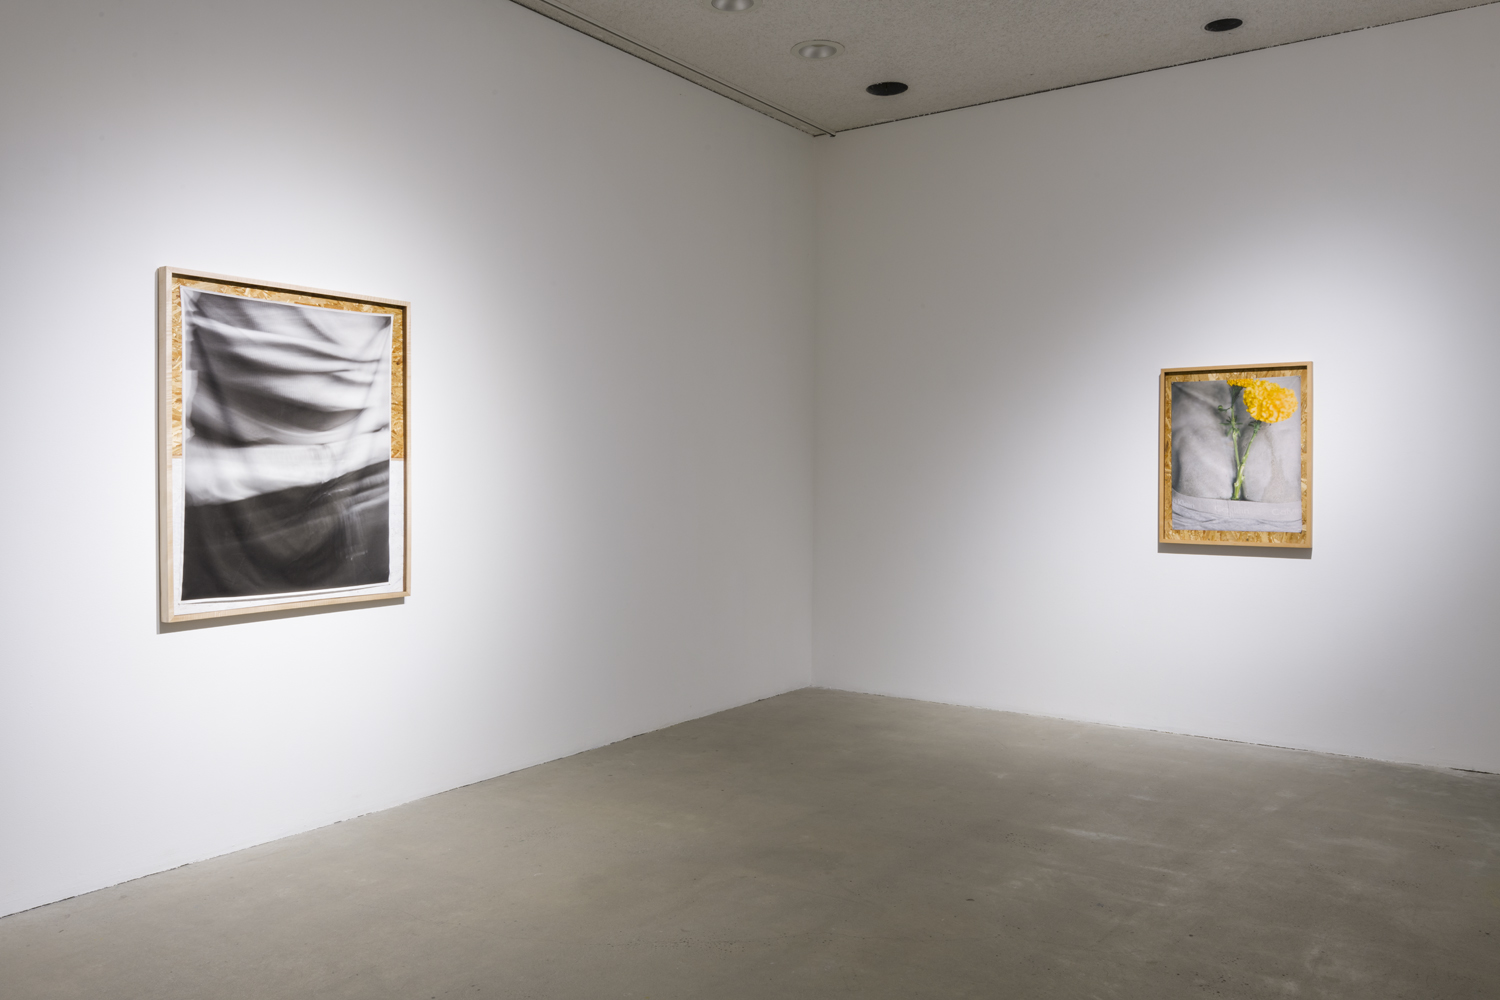 In this artwork installation by the artist David Alekhuogie, one artwork hanging on the wall depicts the artist's clothed body from the torso to the top of his pants. The fabric he's wearing has many creases and crinkles; this photograph is in shades of grey, white and black. This photograph is placed on top of a cork board, with the bottom half of the cork board painted white. To the right of this work is another artwork hanging on the wall of a photograph depicting the backside of a concrete human figure, with a bright marigold flower and green stem placed in the crackline of the figure. The figure is also wearing underwear that says